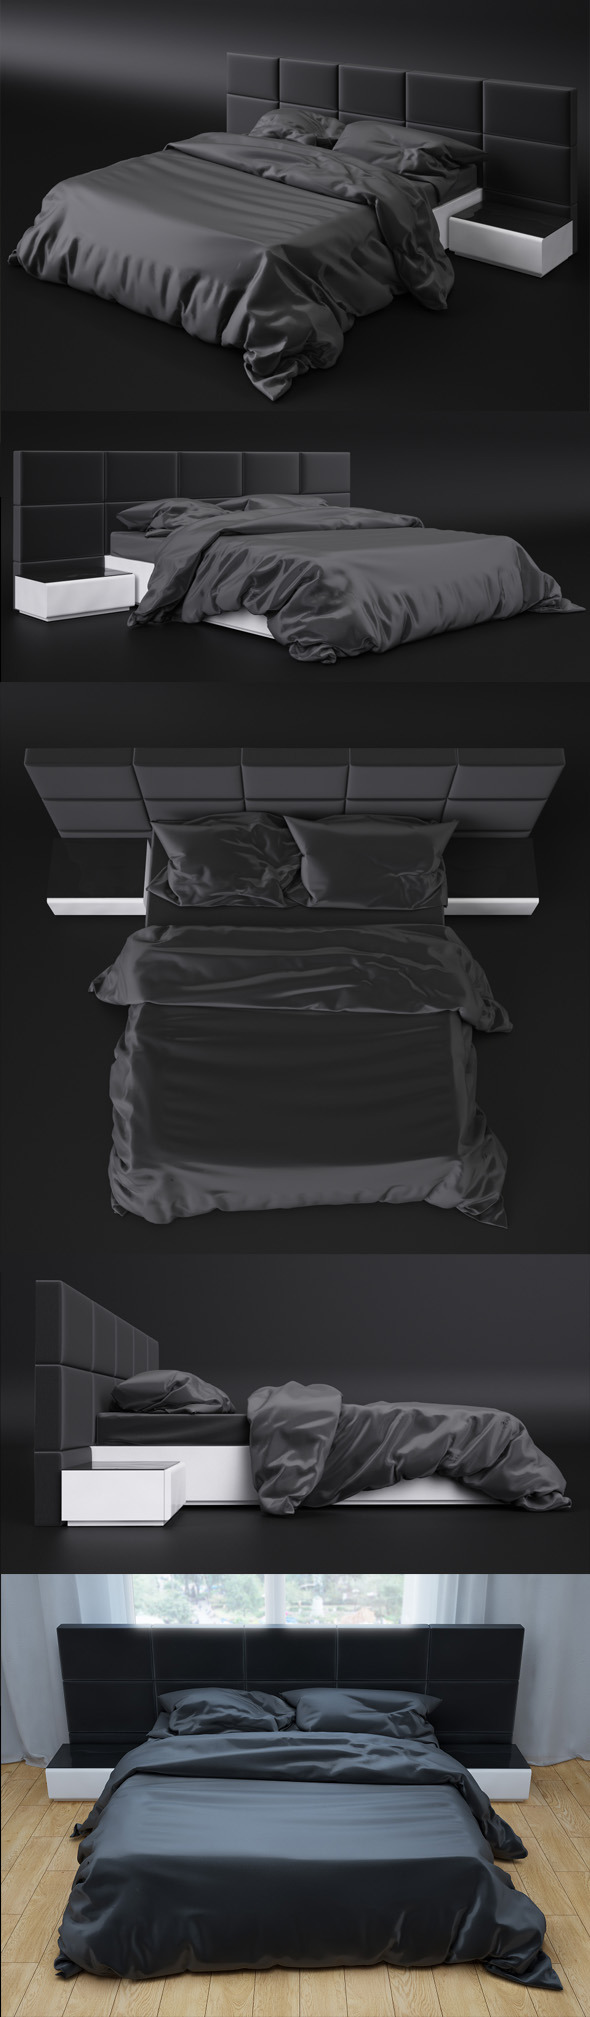 Bed sicilia premium 3D Model - 3DOcean Item for Sale